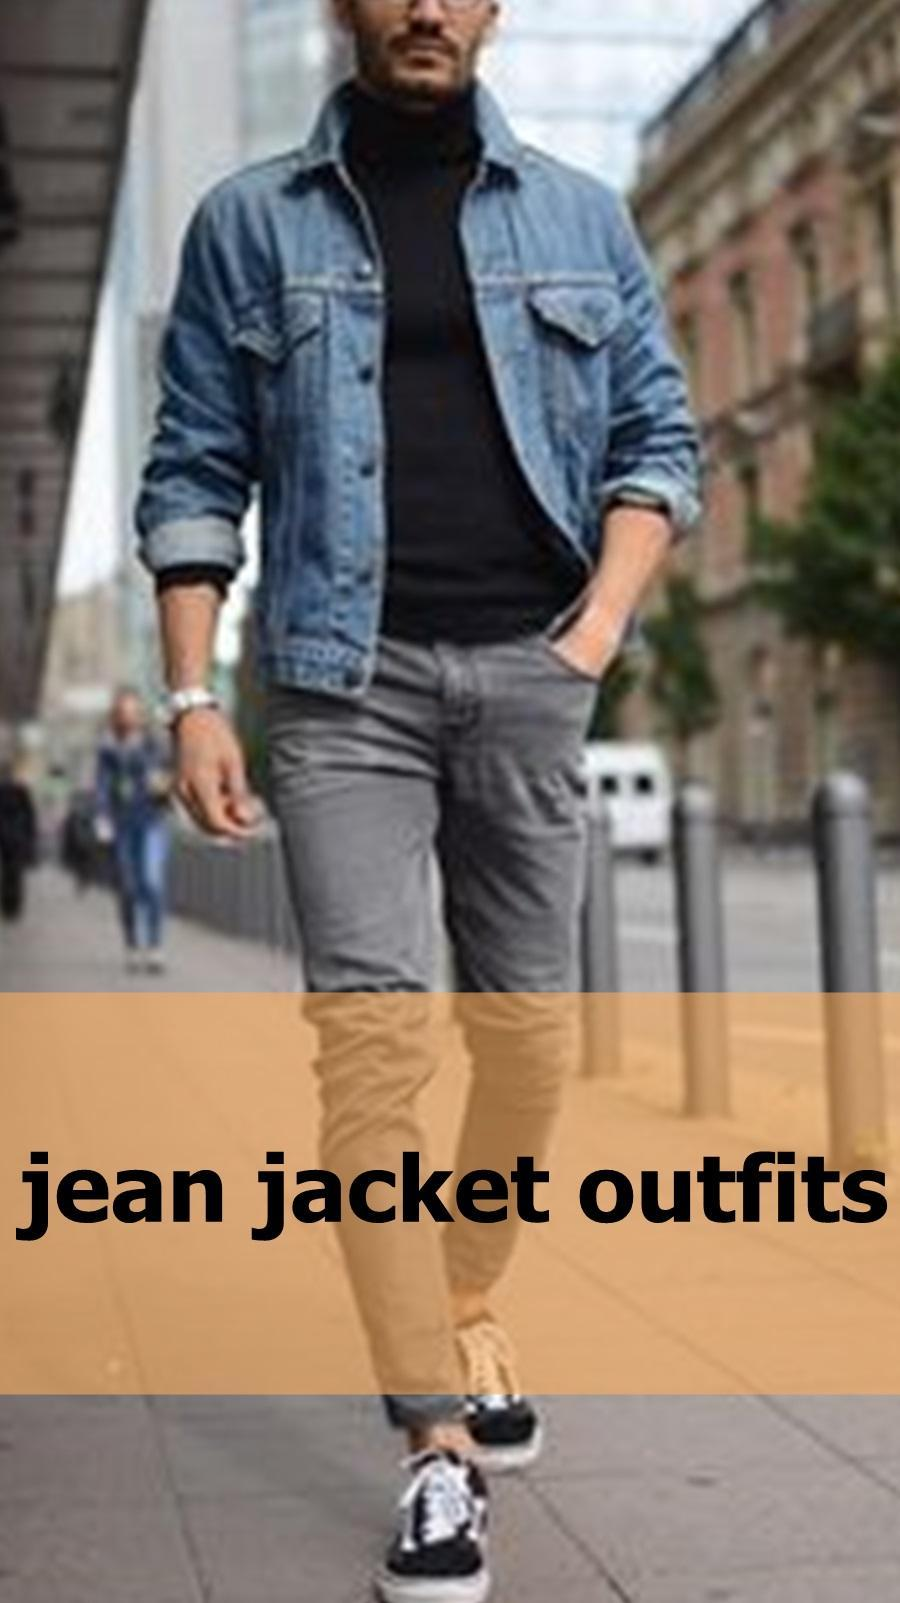 jean jacket outfits ideas for Android - APK Download